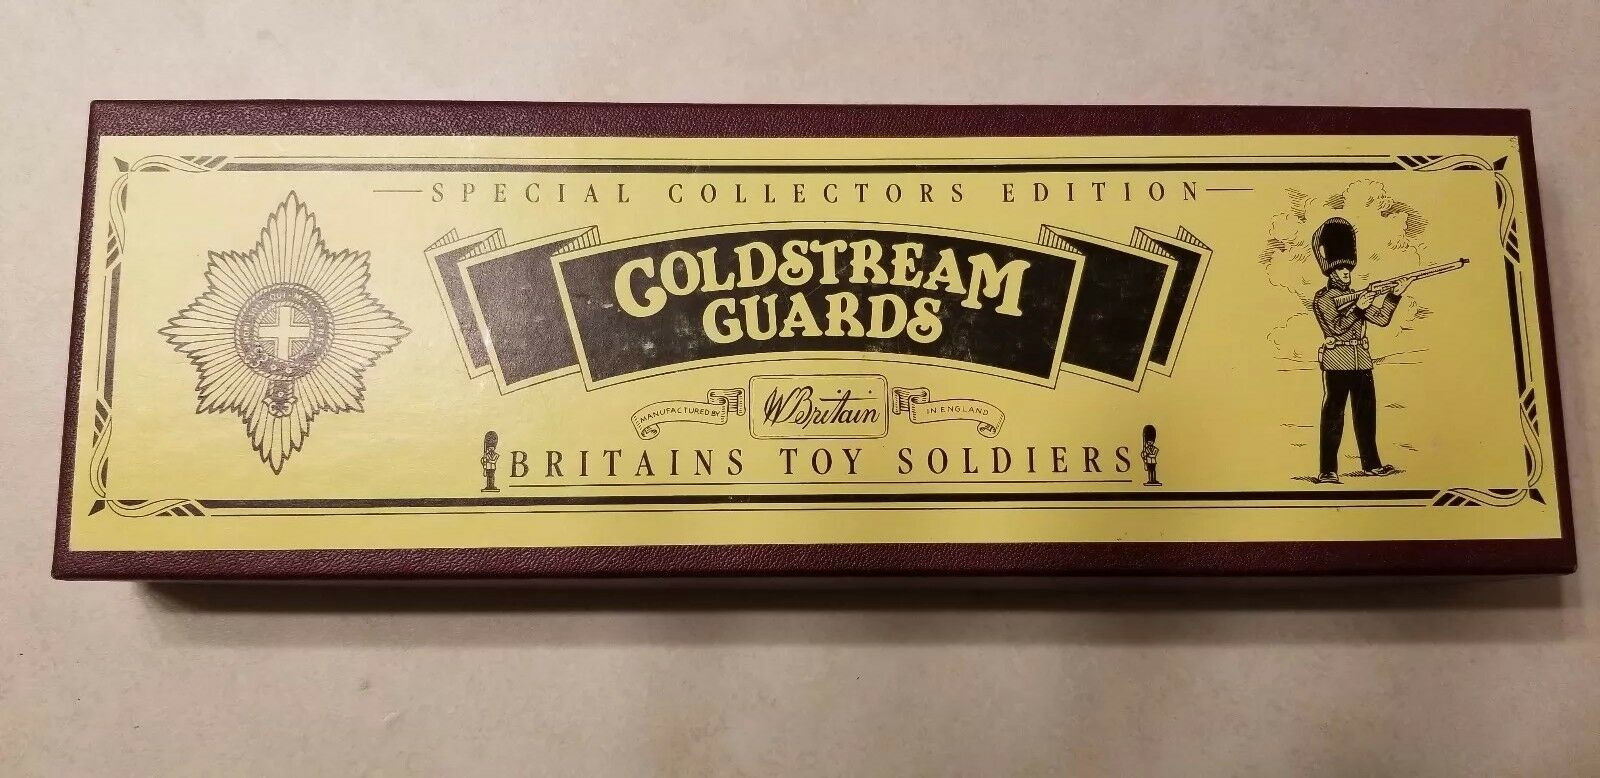 NEW Britains toy soldiers 8800 Coldstream guards 1990 100% Original GIFT